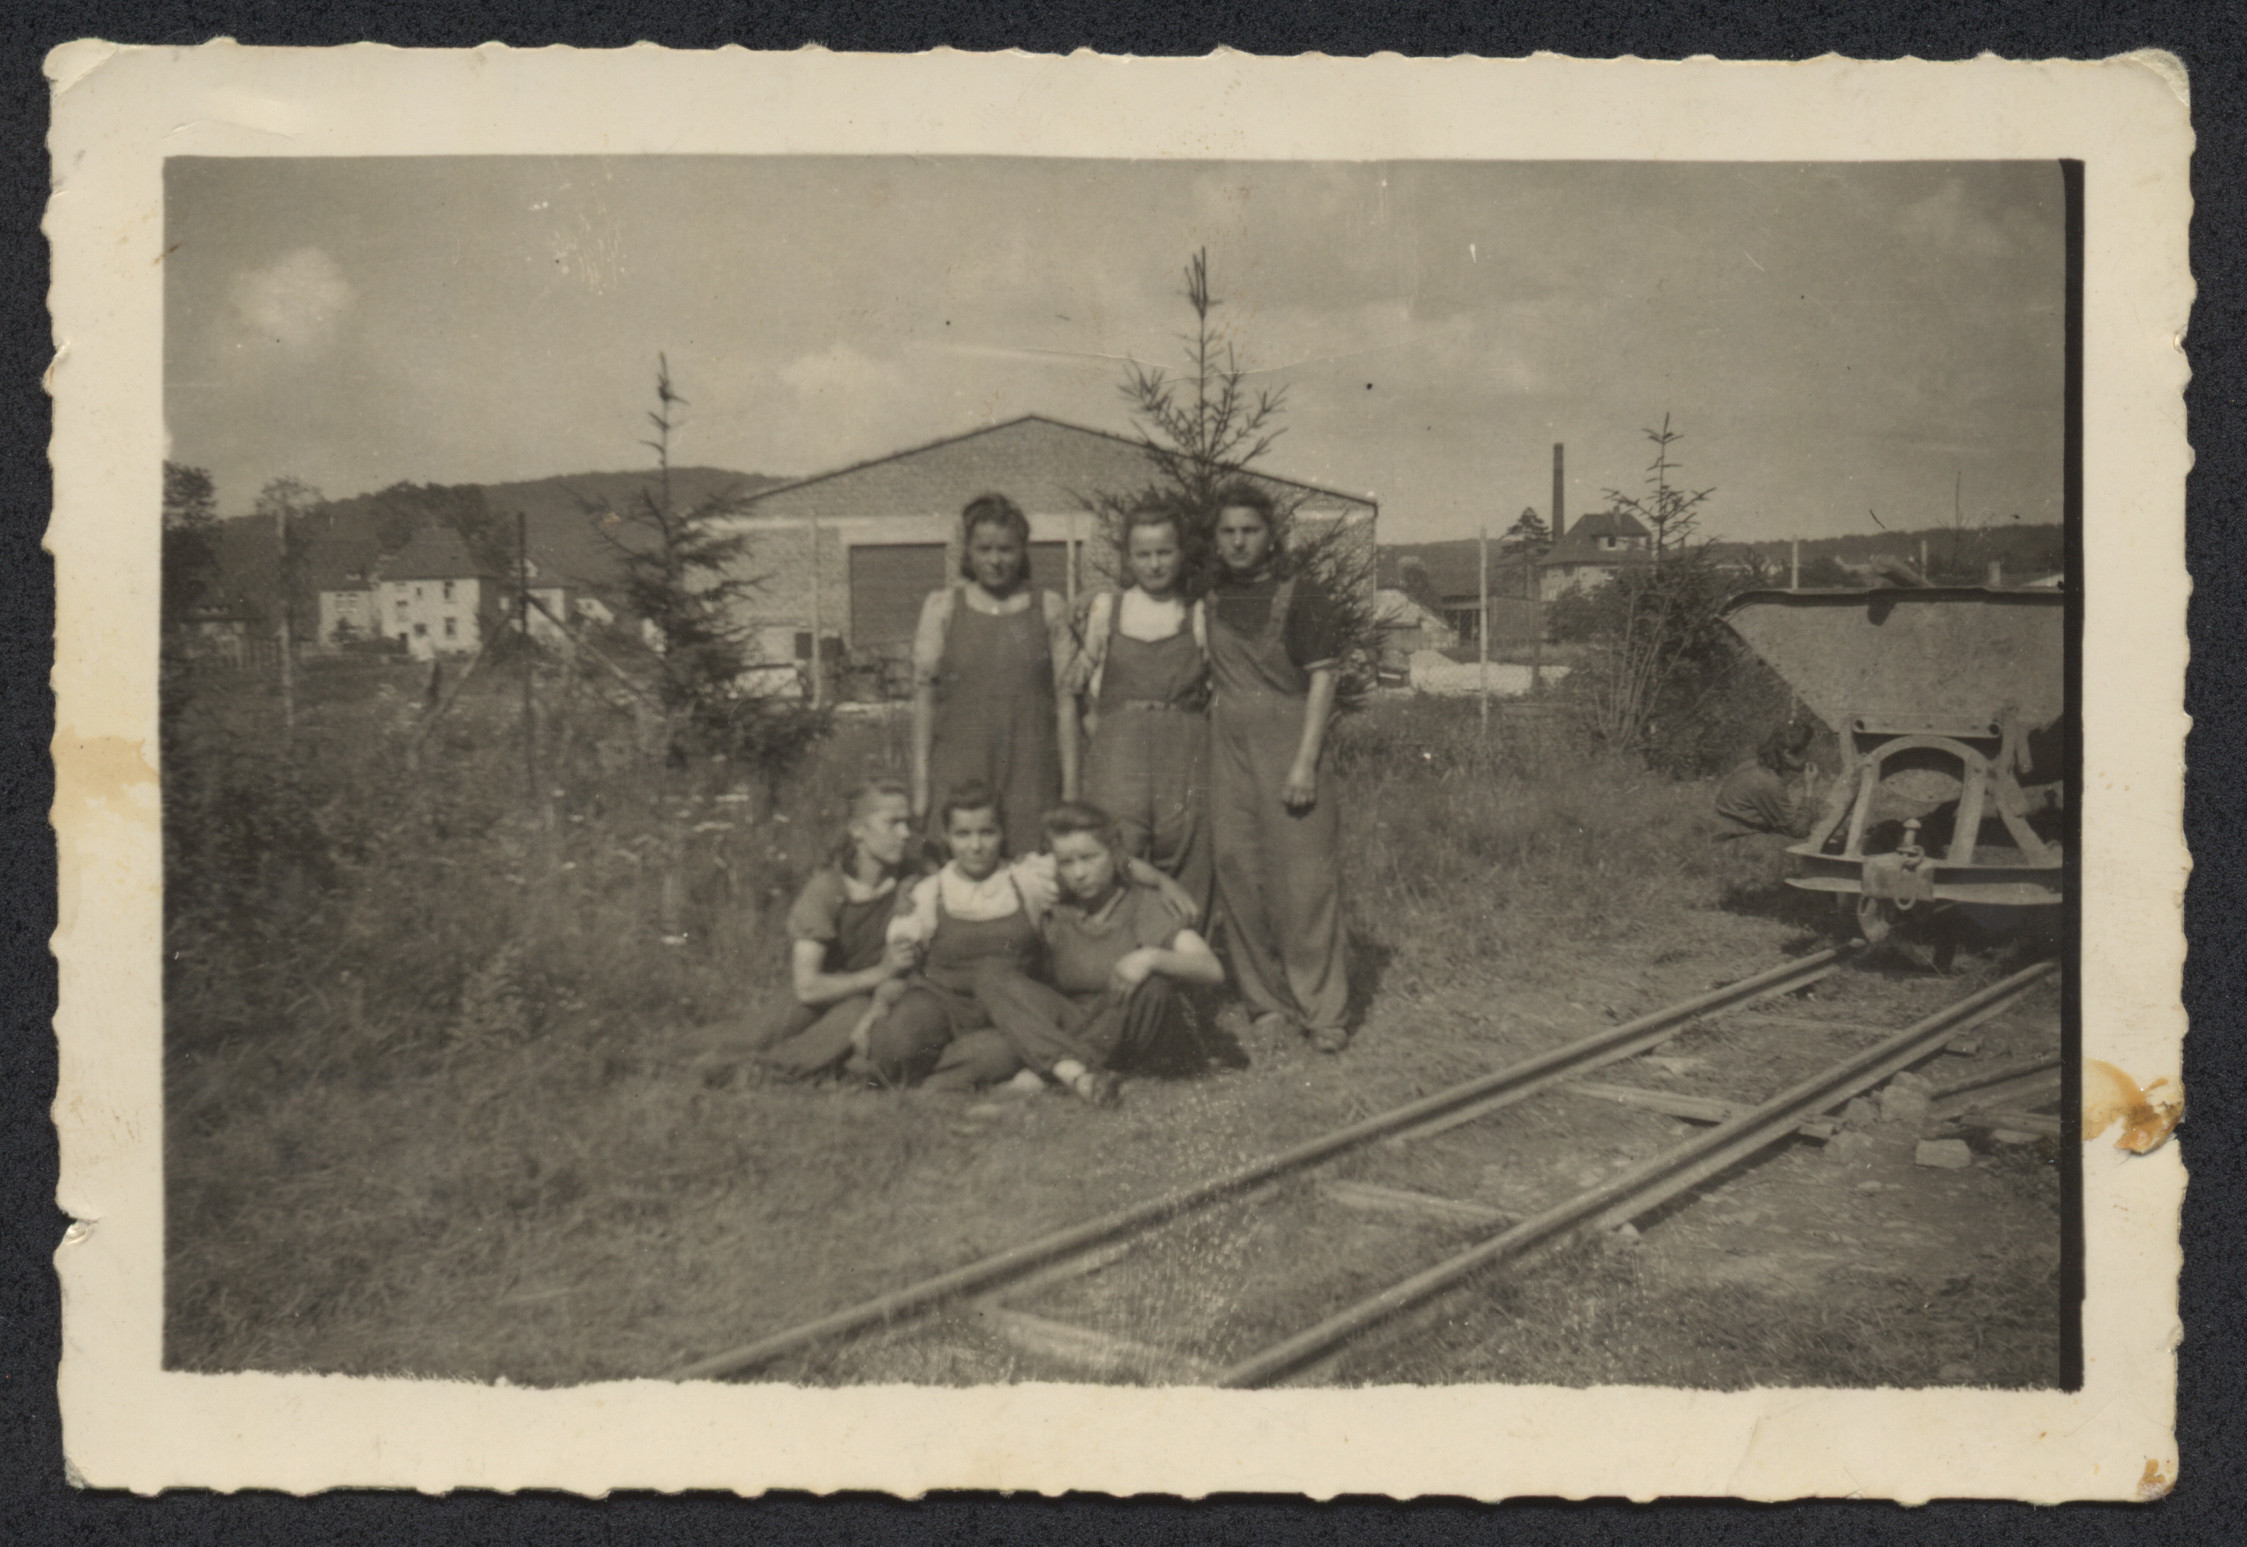 Hencia Wagner (standing right) works in munitions factory while hiding as a Catholic laborer.  Also pictured is her friend Carolina Wilk (middle).